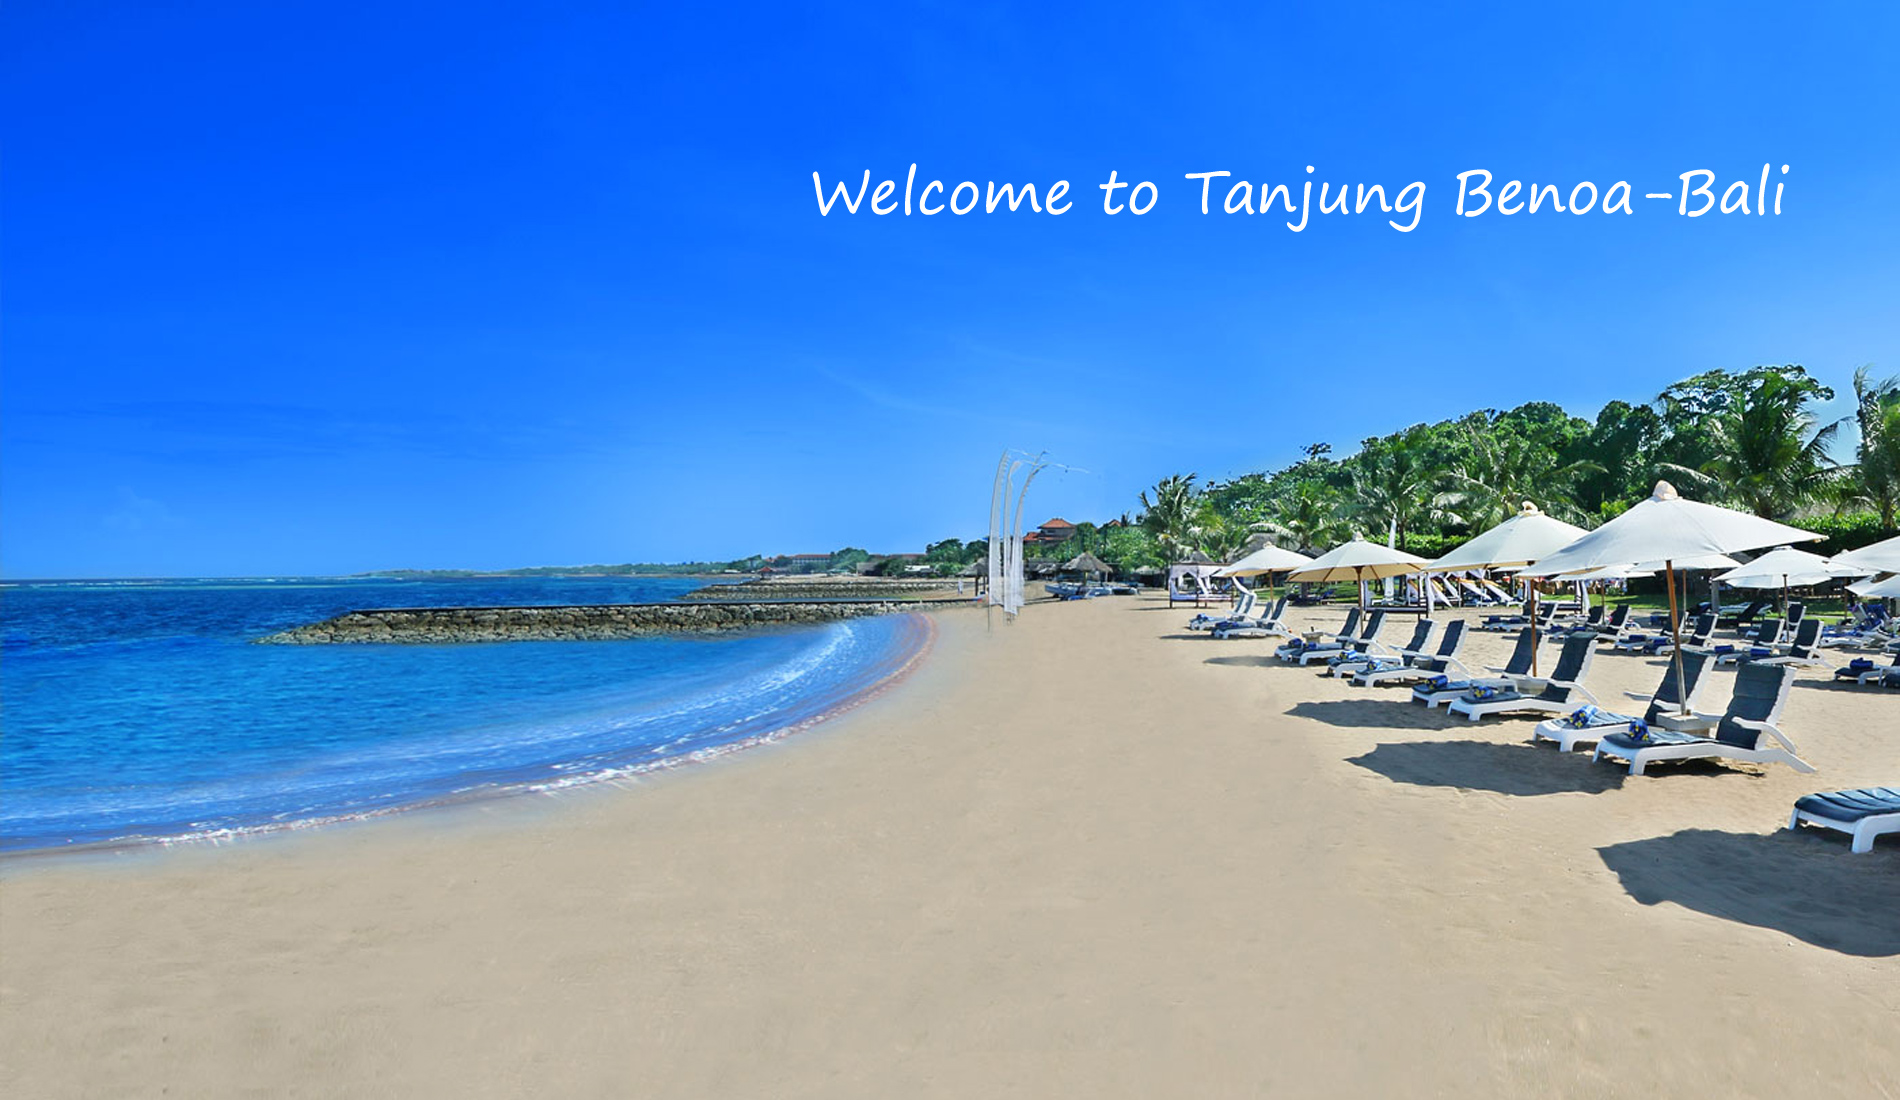 Tanjung Benoa Beach Bali - Bali Tours Activities